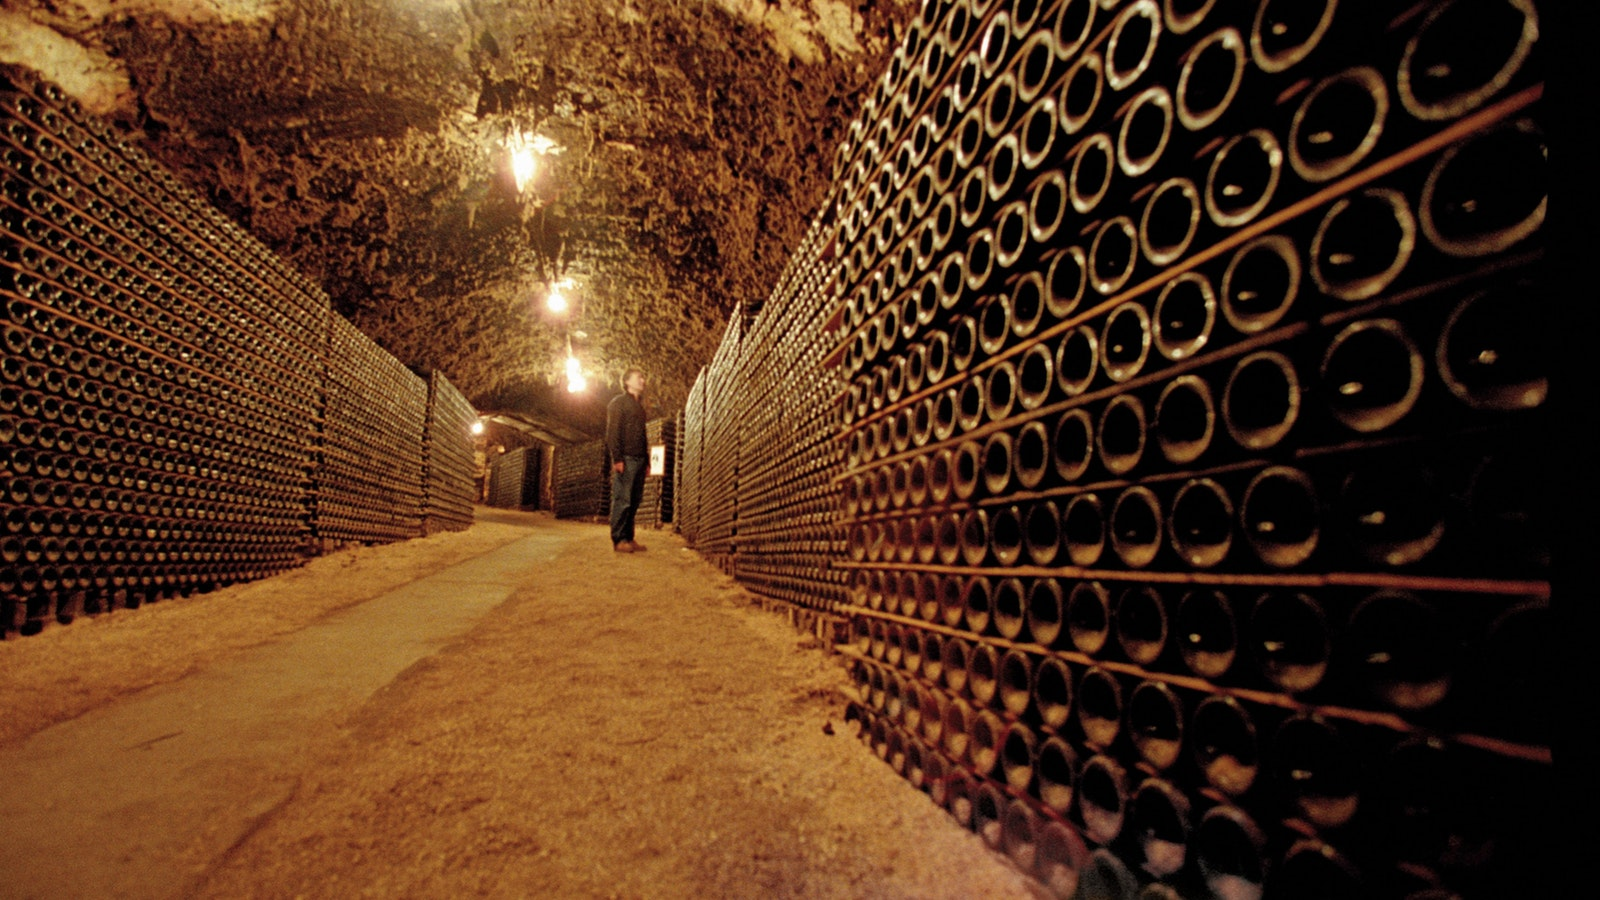 Bests wine cellar